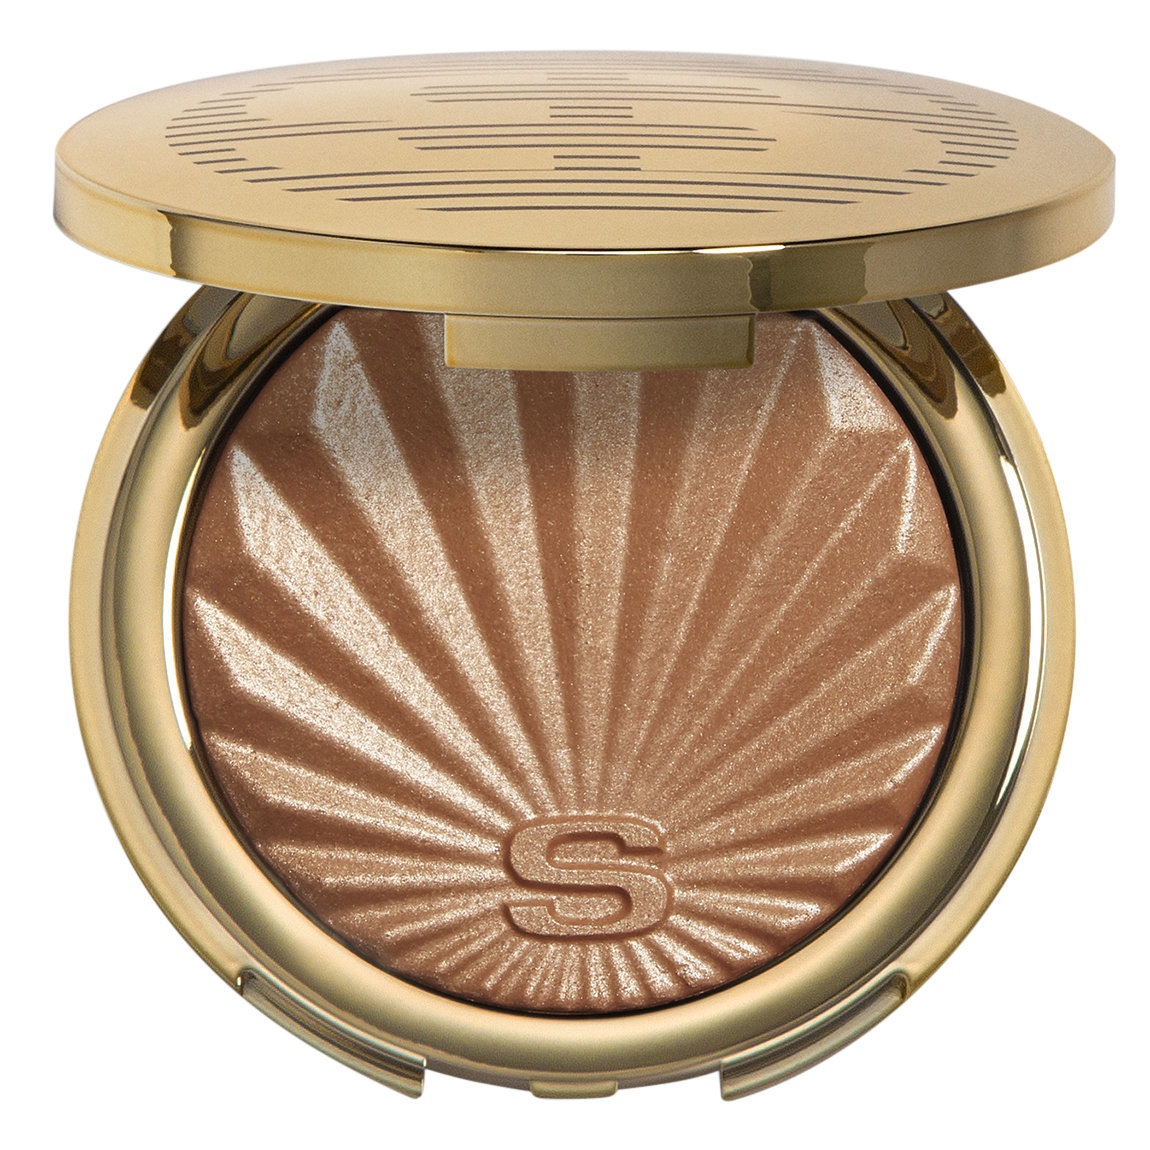 Sisley-Paris Phyto-Touche Illusion d'Eté Bronzer alternative view 1 - product swatch.